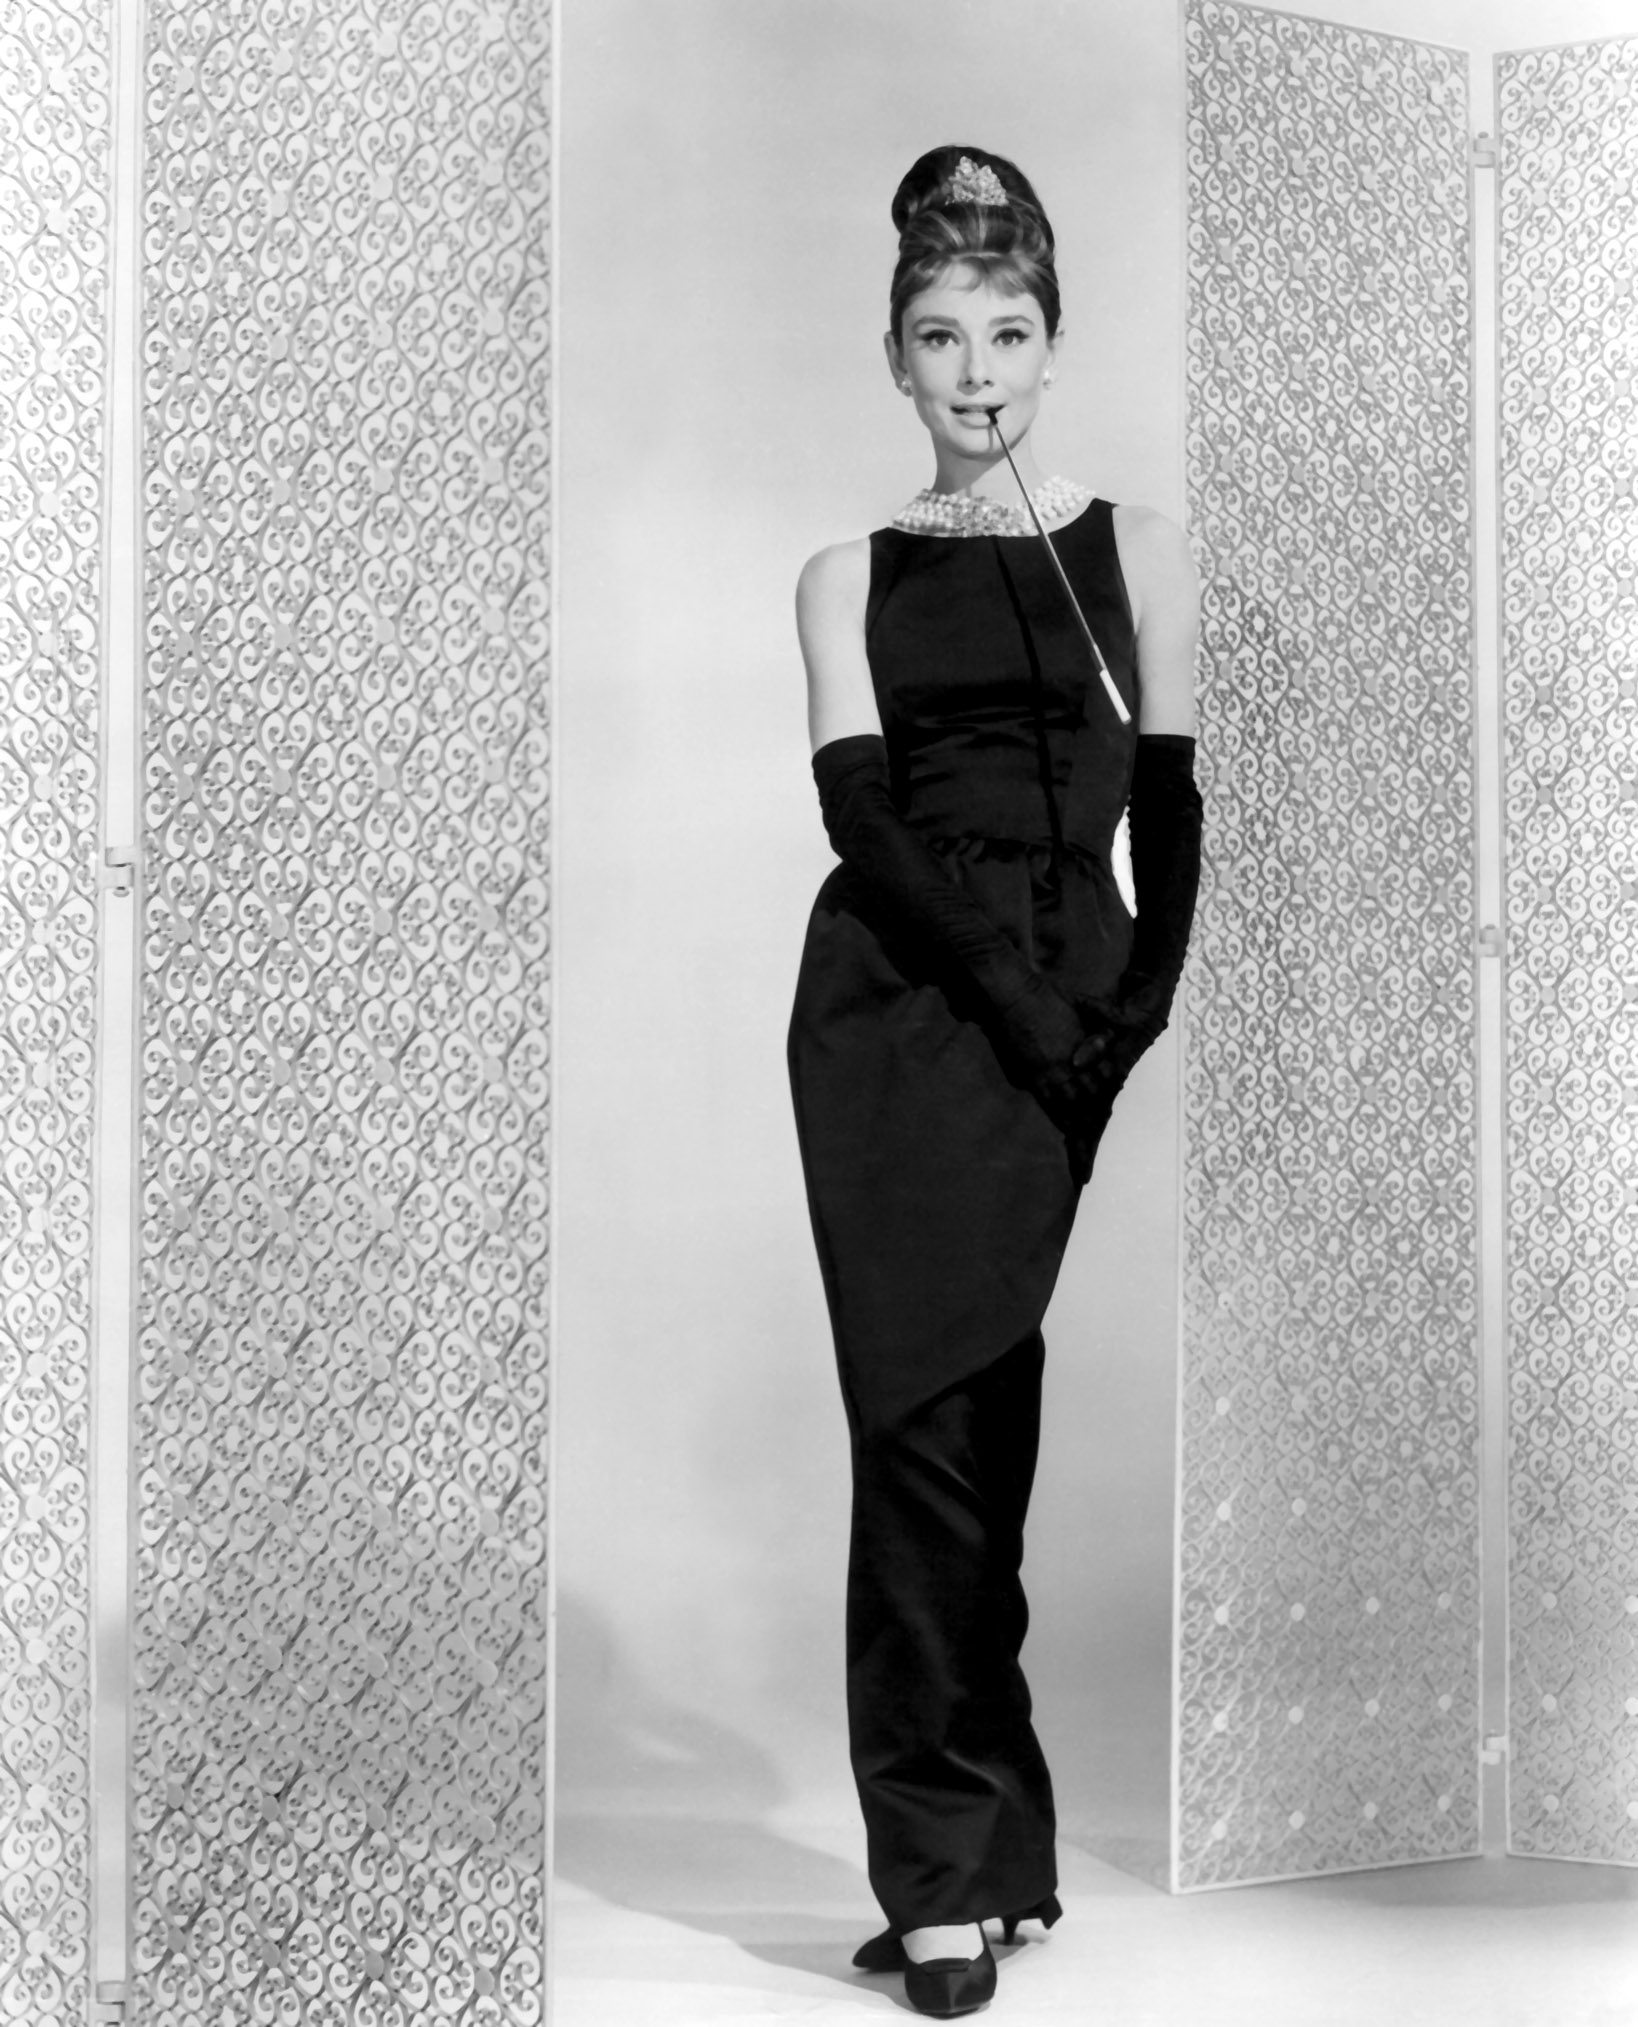 How to rock a little black dress carpool goddess for Audrey hepburn pictures to buy